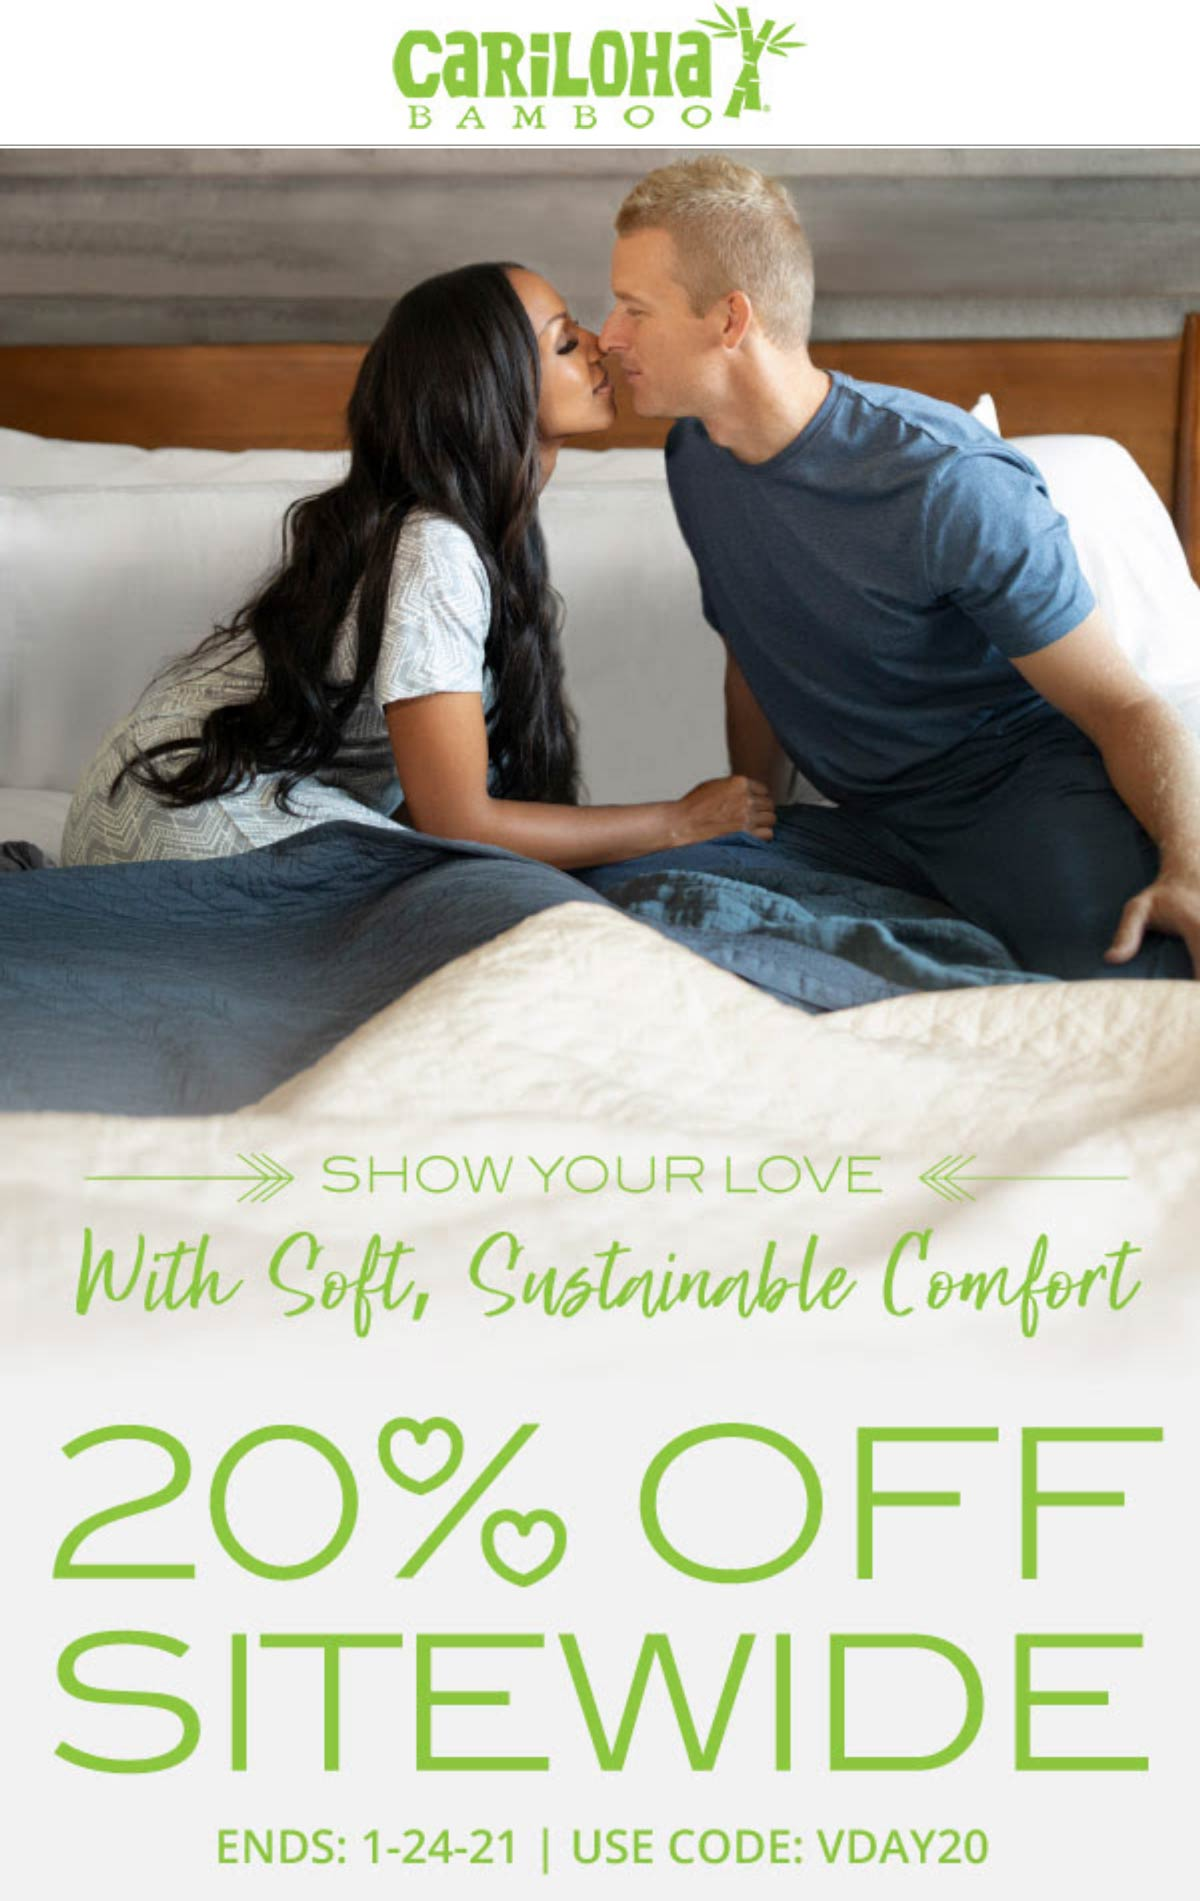 Cariloha stores Coupon  20% off everything today at Cariloha bamboo sheets via promo code VDAY20 #cariloha